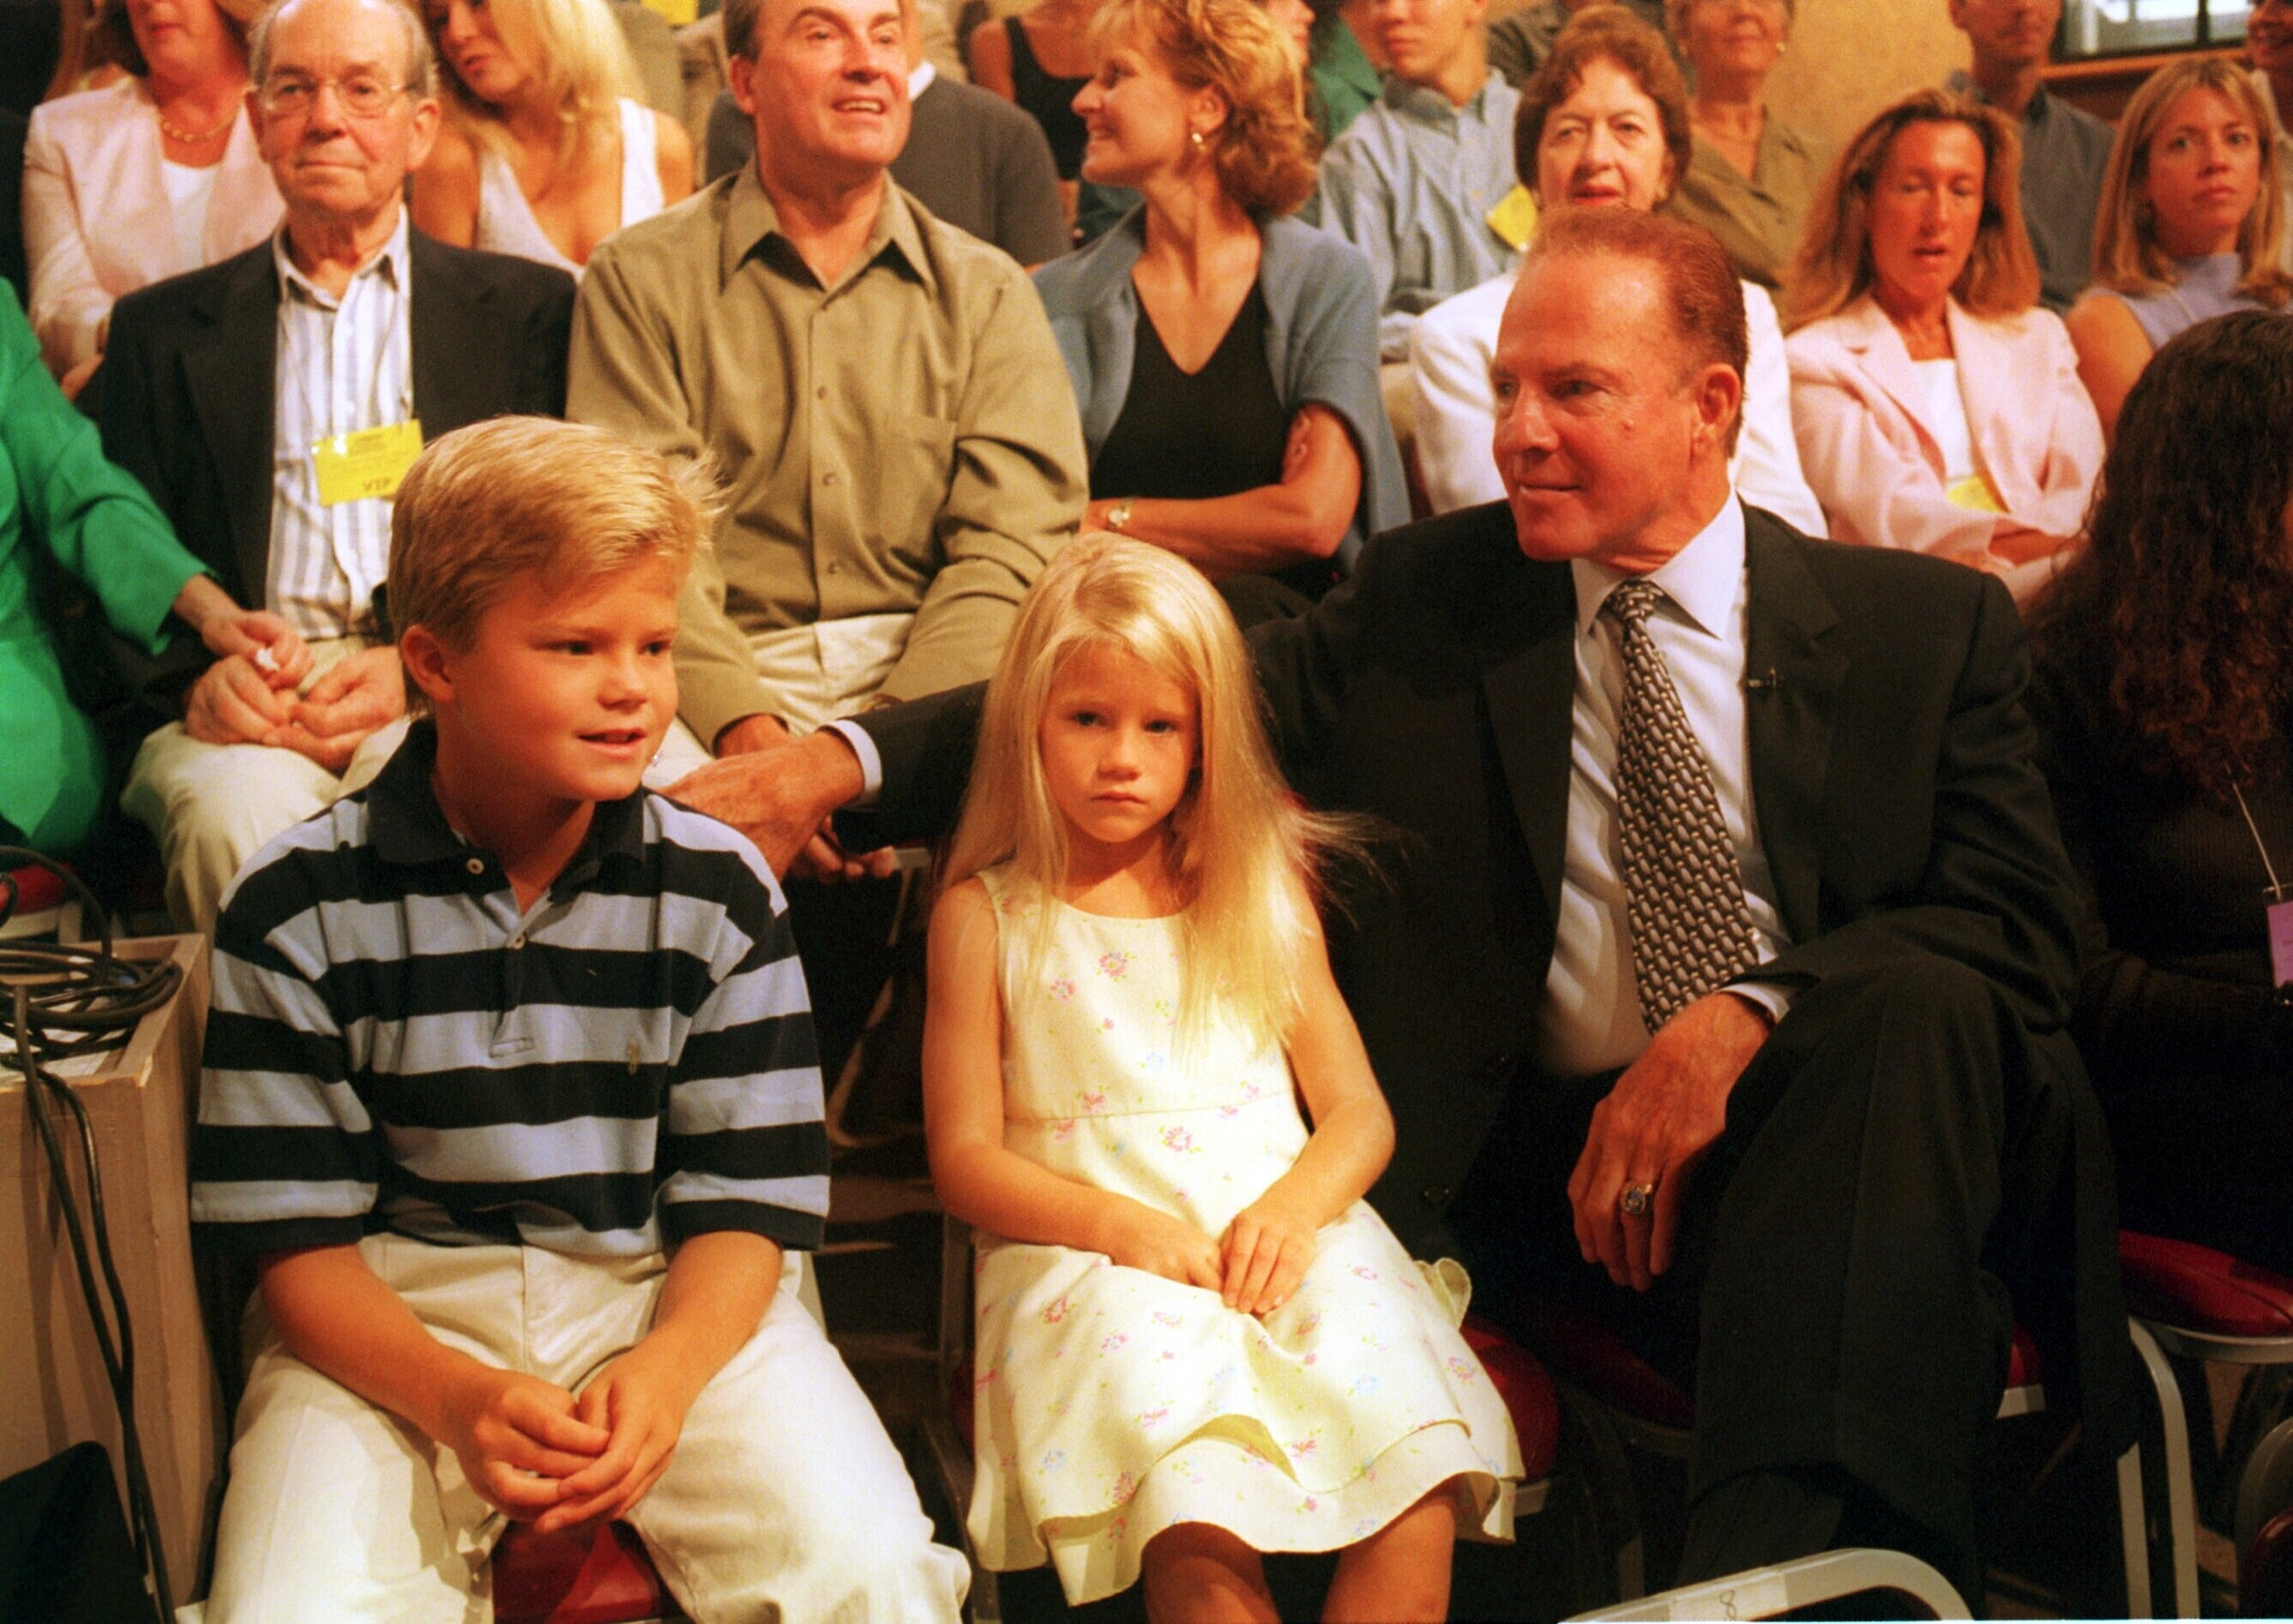 Frank gifford 39 s daughter cassidy share moving tribute to for Frank and kathie lee gifford wedding